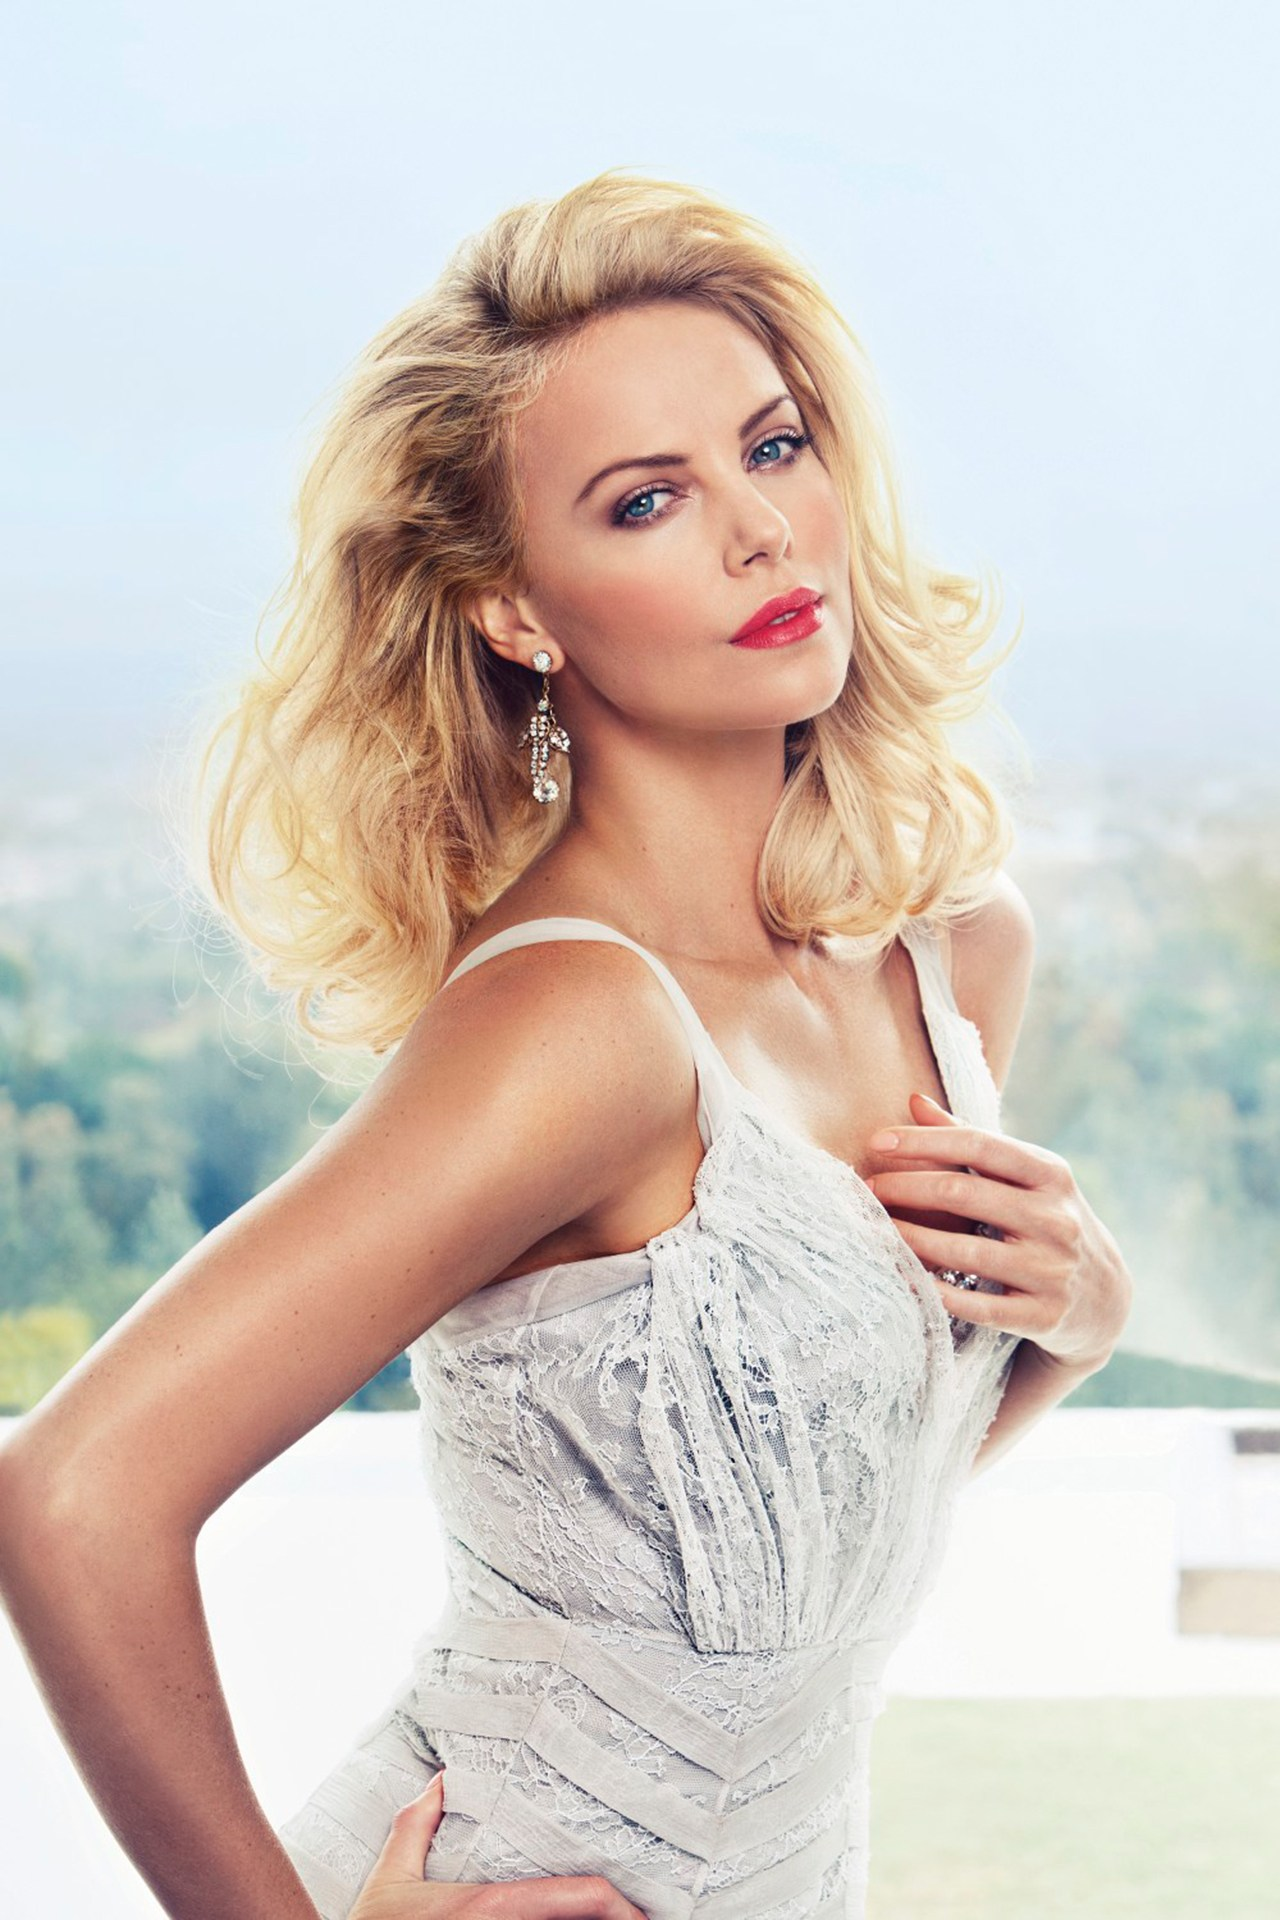 Pictures Of Charlize Theron Pictures Of Celebrities